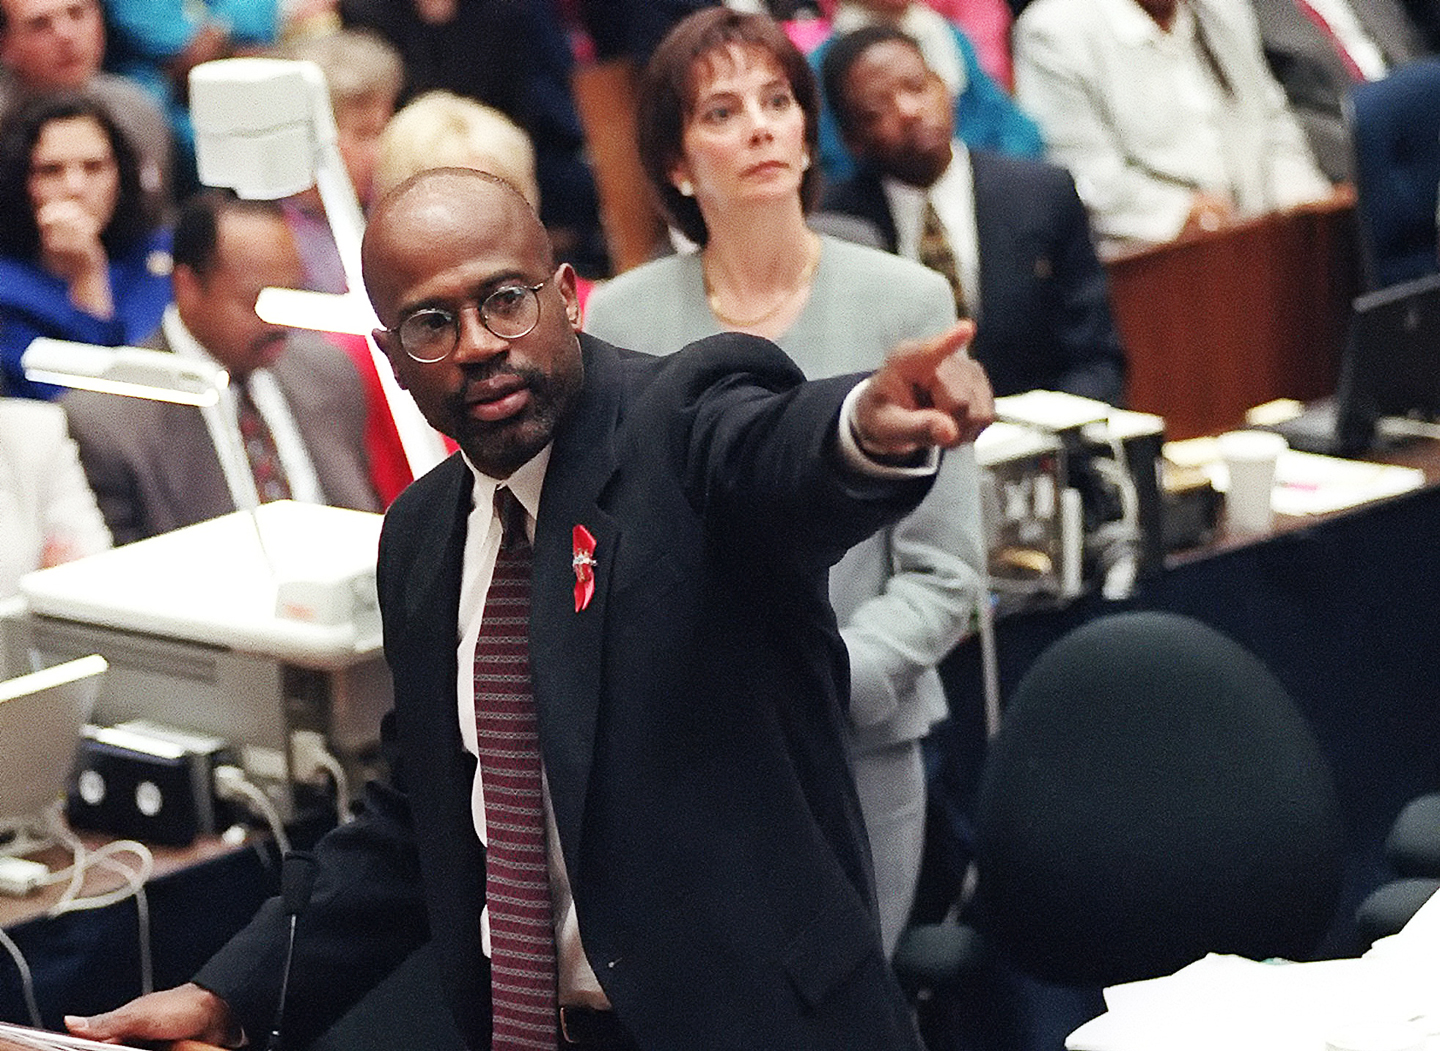 Prosecutor Christopher Darden points at a chart during his closing arguments as Marcia Clark looks on, Friday, Sept. 29, 1995, in a Los Angeles courtroom during the O.J. Simpson double-murder trial.